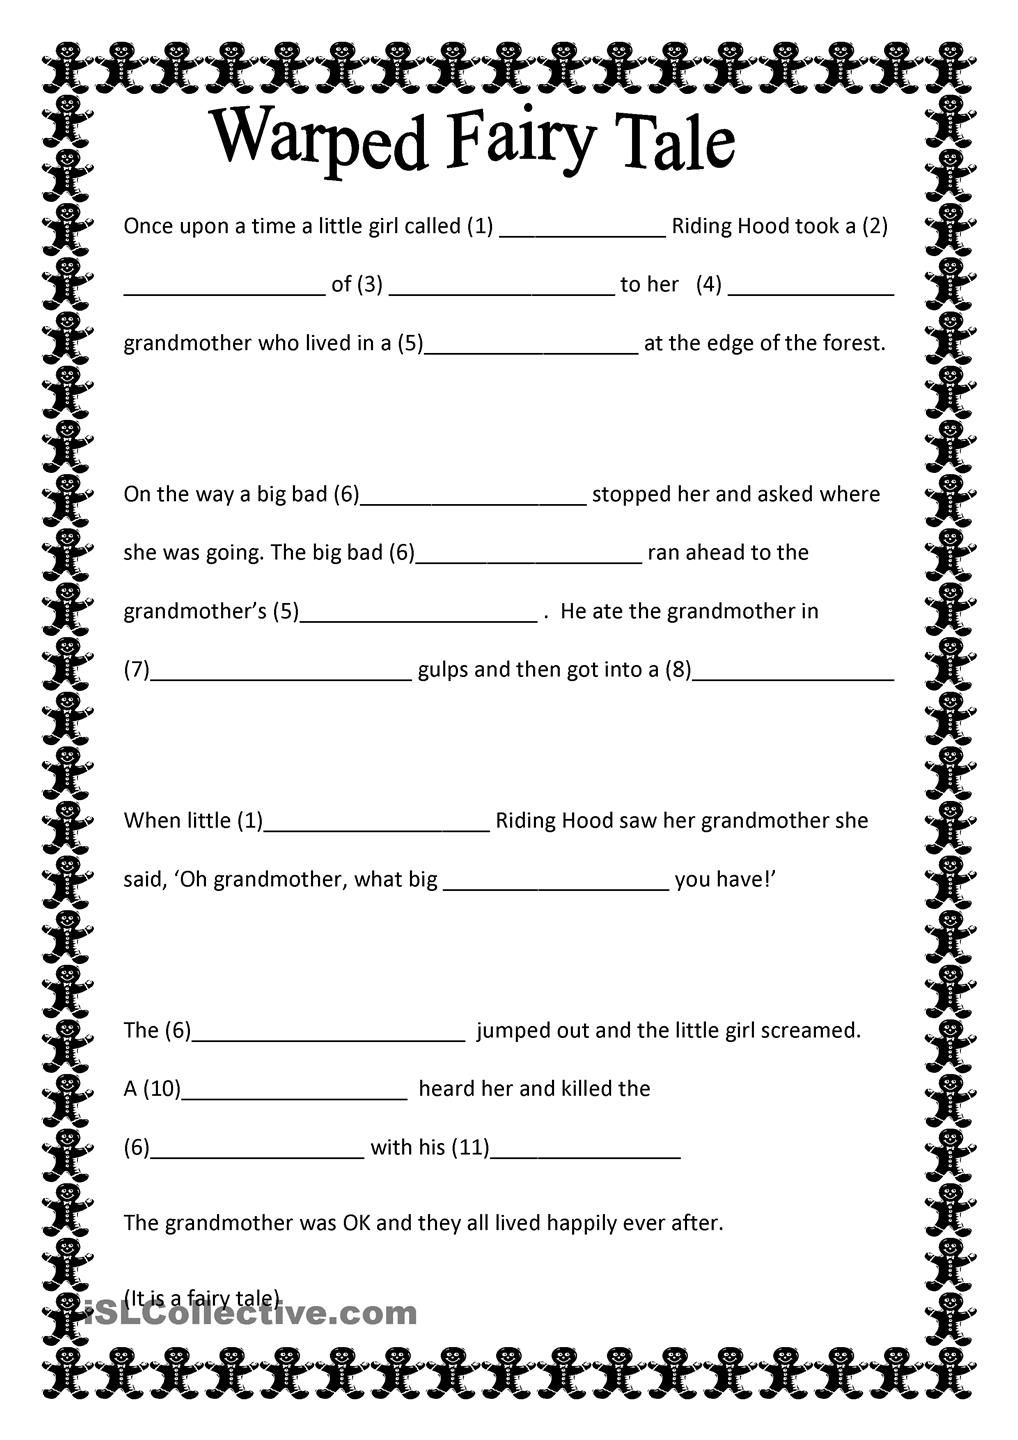 Warped Fairy Tale | Fairy Tales Lucy Calkins | Fairy Tales Unit | Fairy Tale Printable Worksheets